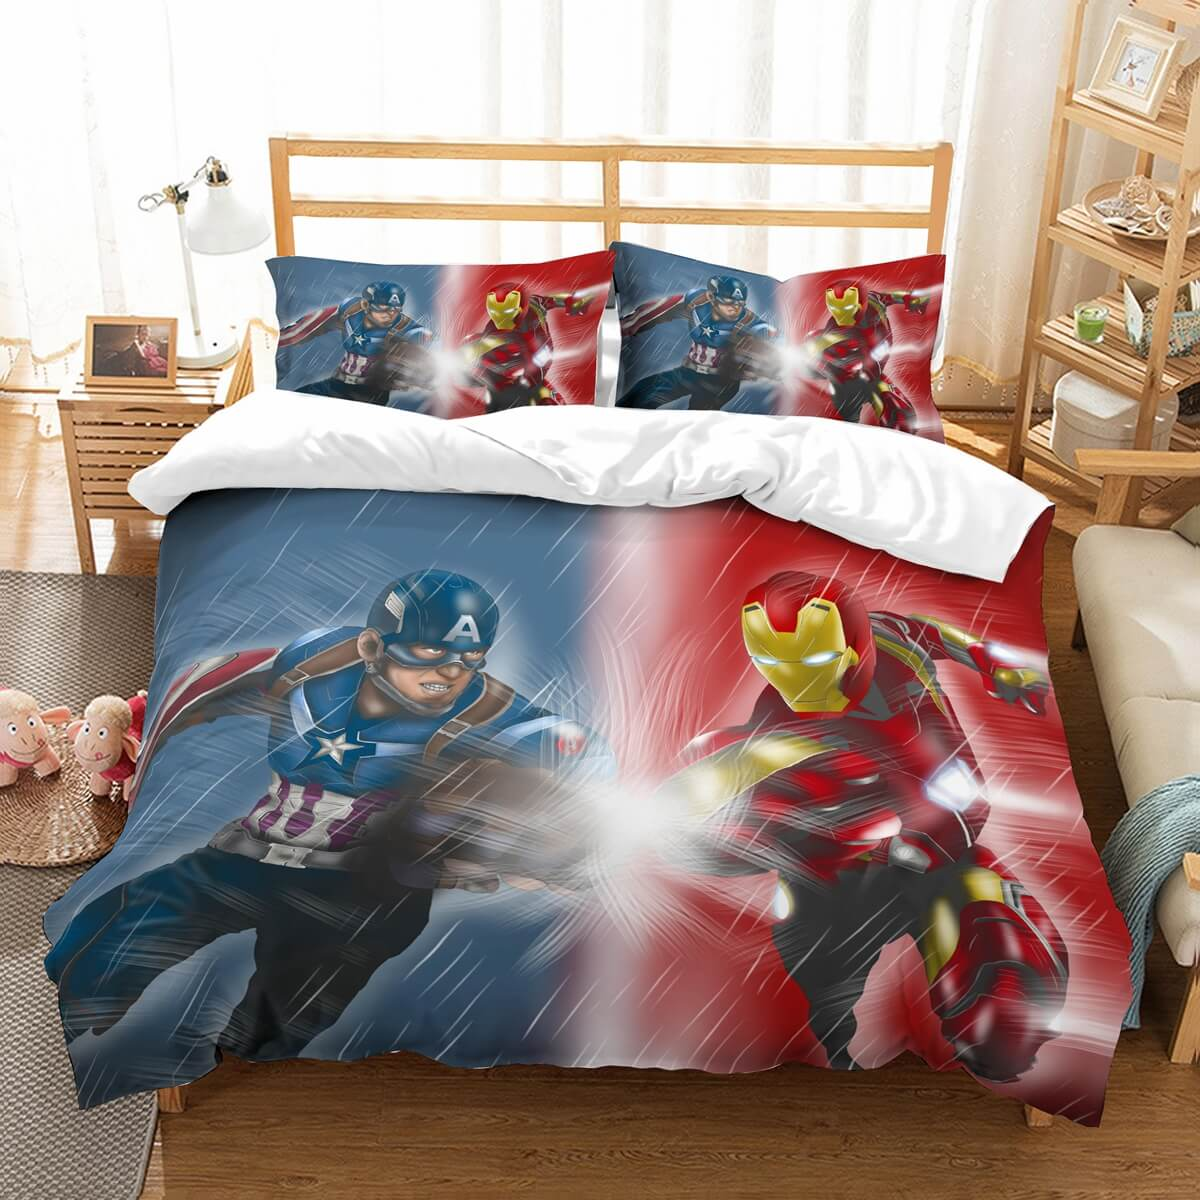 3D Customize Captain America Vs Iron Man  Bedding Set Duvet Cover Set Bedroom Set Bedlinen